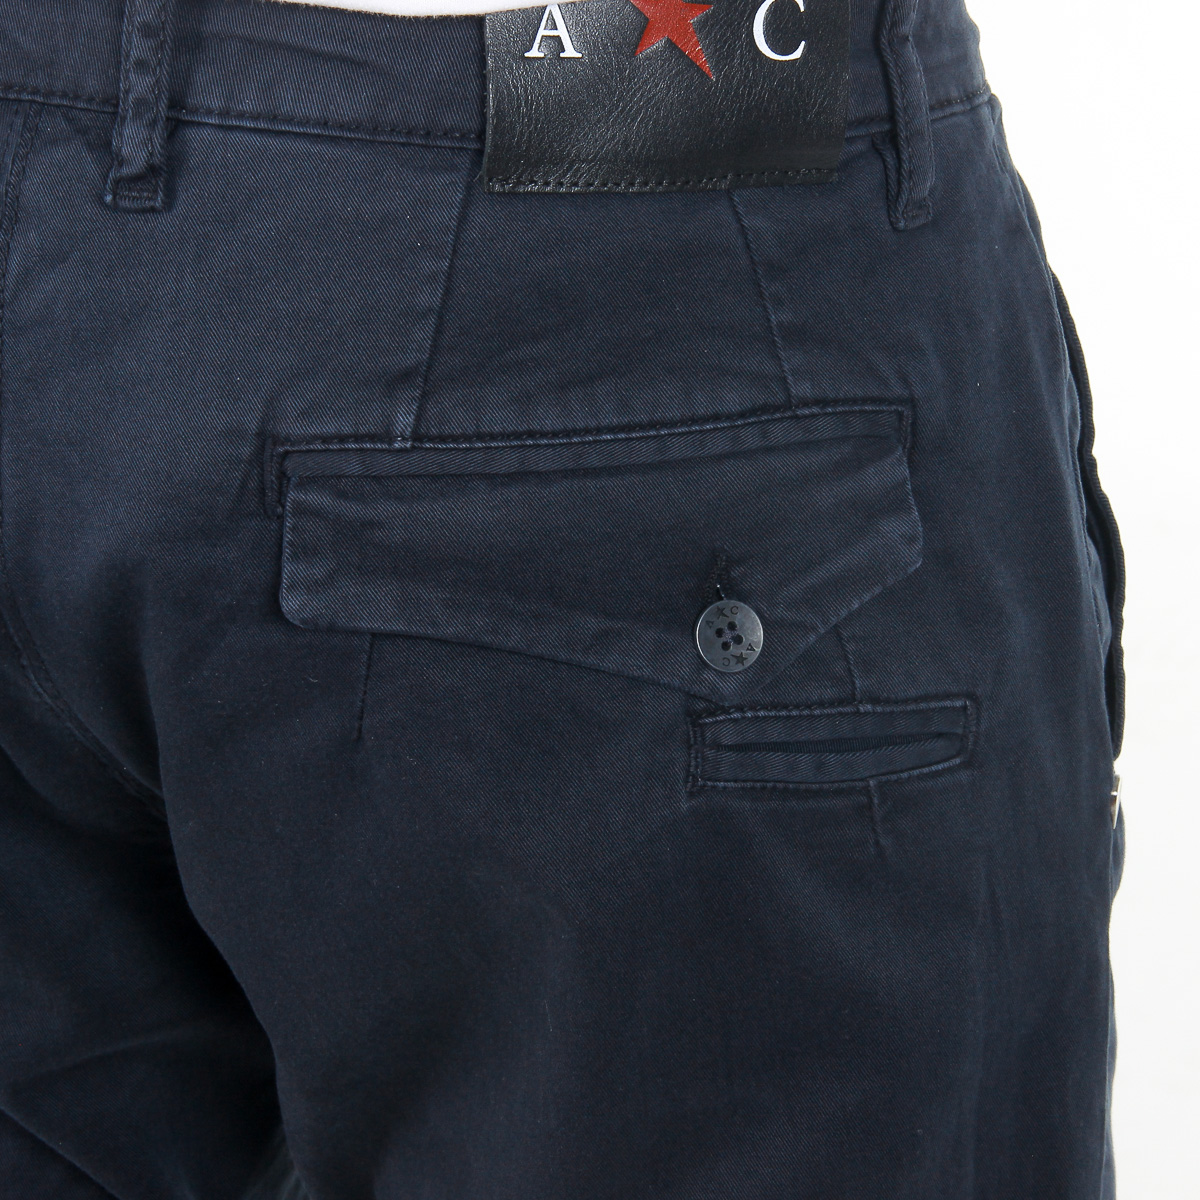 Primary image for Andrew Charles Mens Pants Blue AMARA